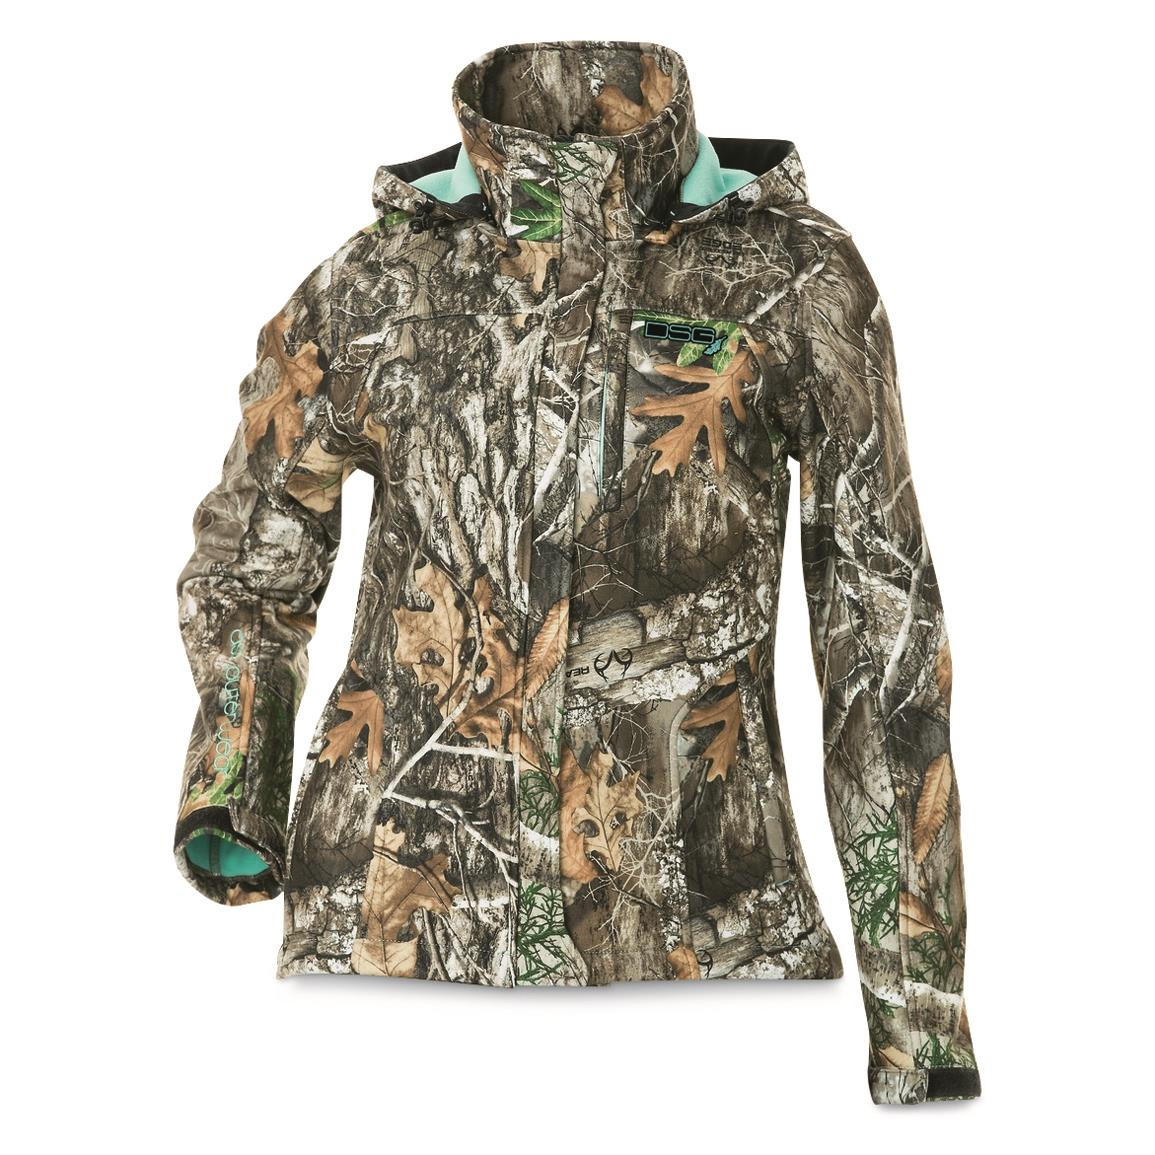 Micro-tricot outer layer bonded to micro-fleece, Realtree Edge Camo